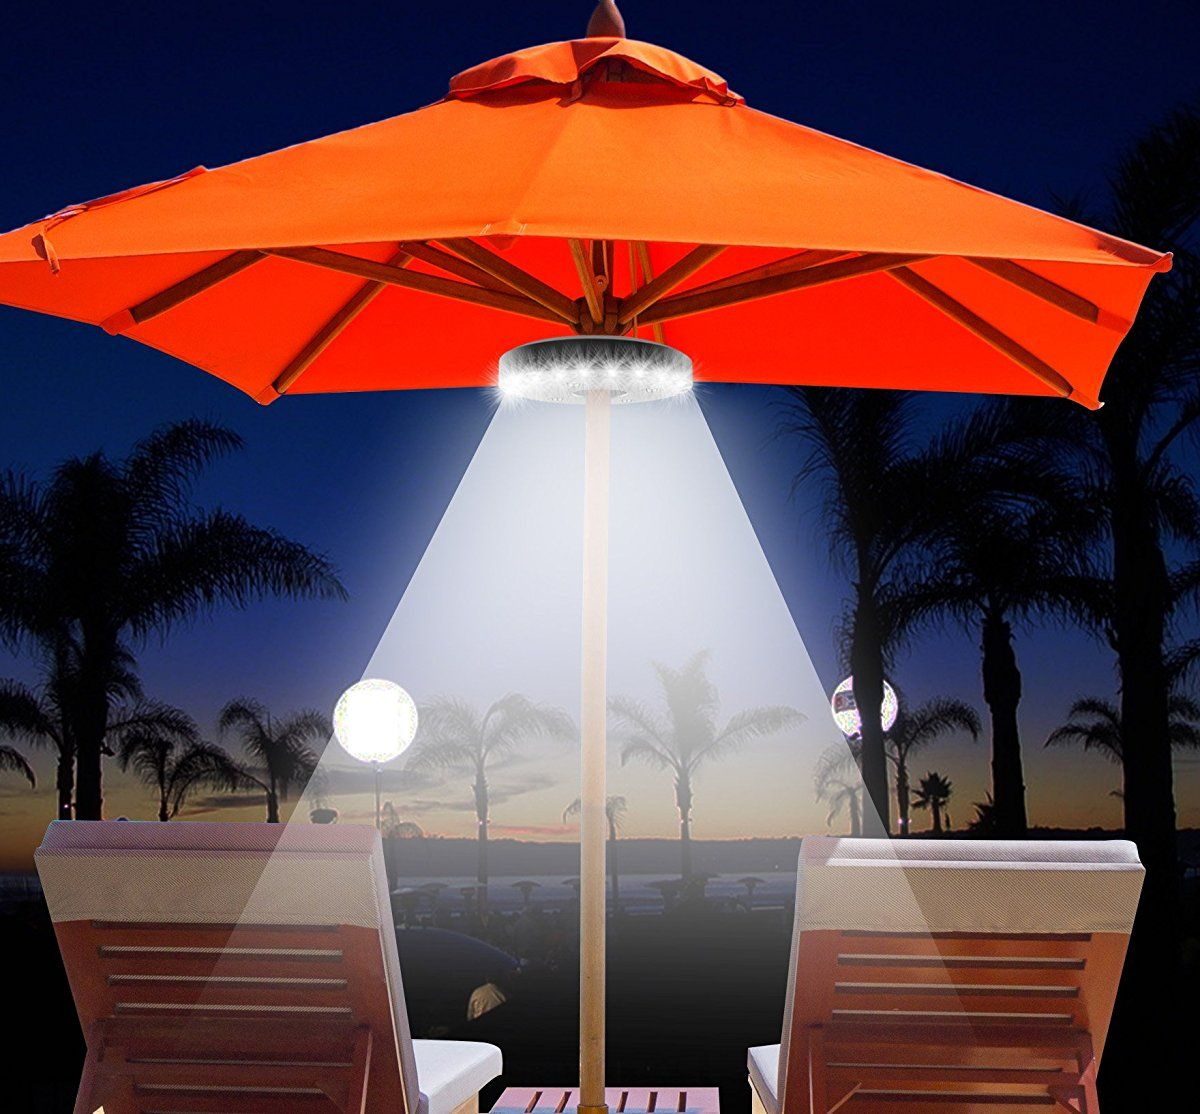 How To Use Umbrella Lights Fascinating Umbrella Pole Light For Patio Umbrellas Camping Tents Or Outdoor